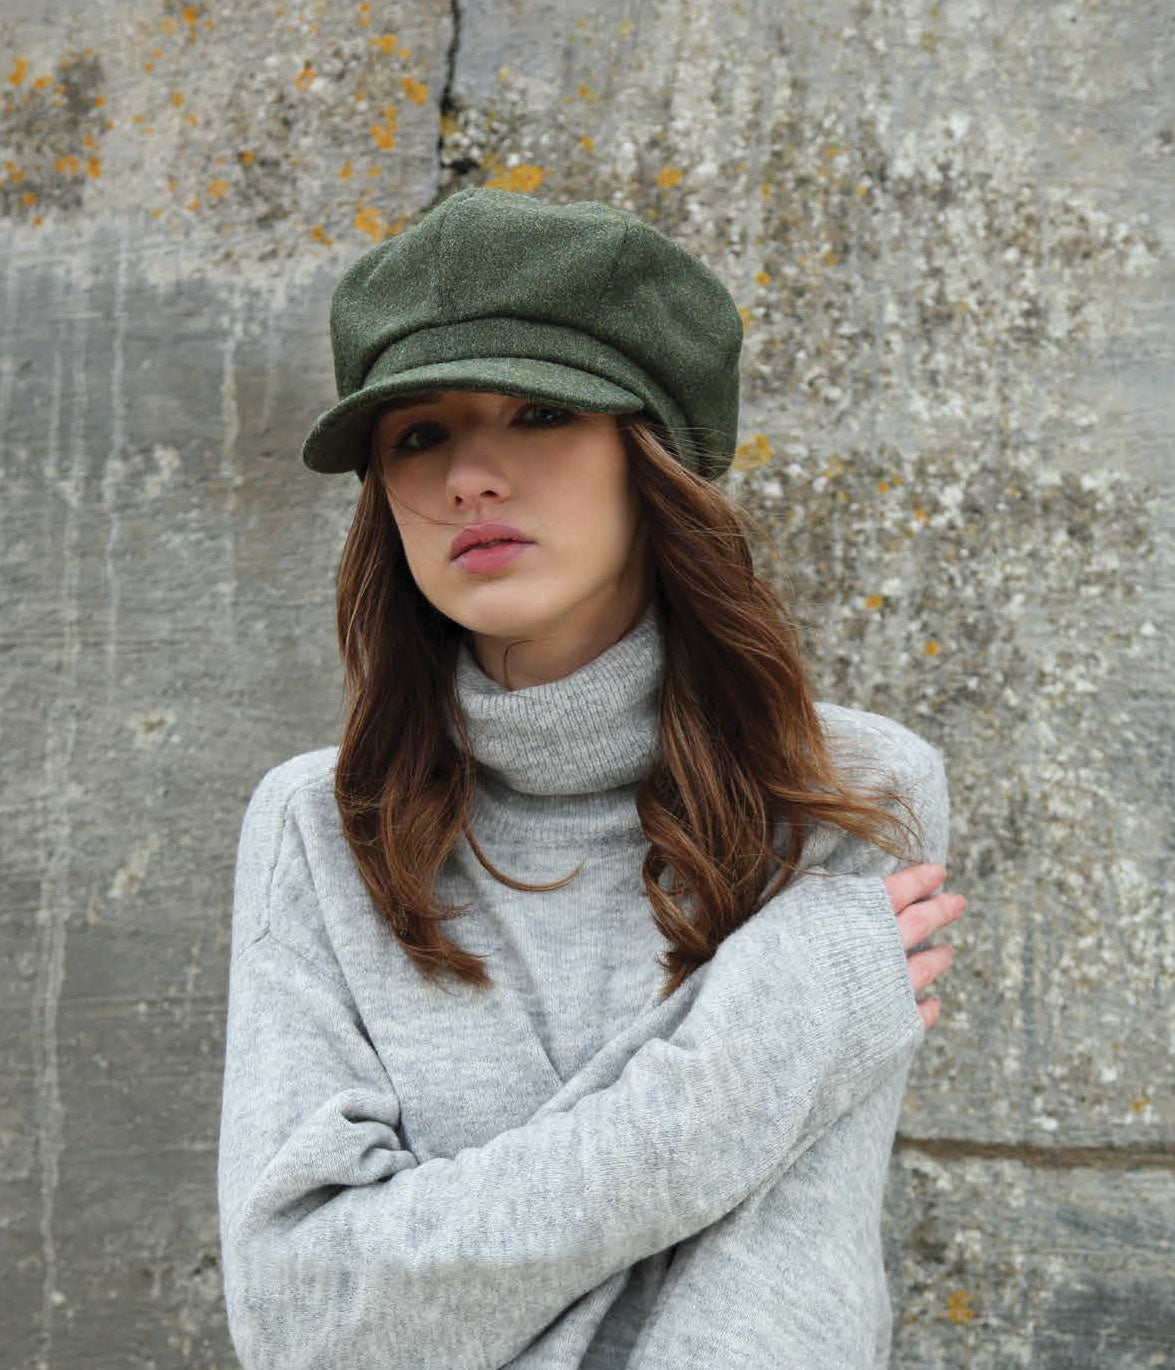 Ladies' Baggy Eight Panel Tweed Cap by Hanna Hats of Donegal